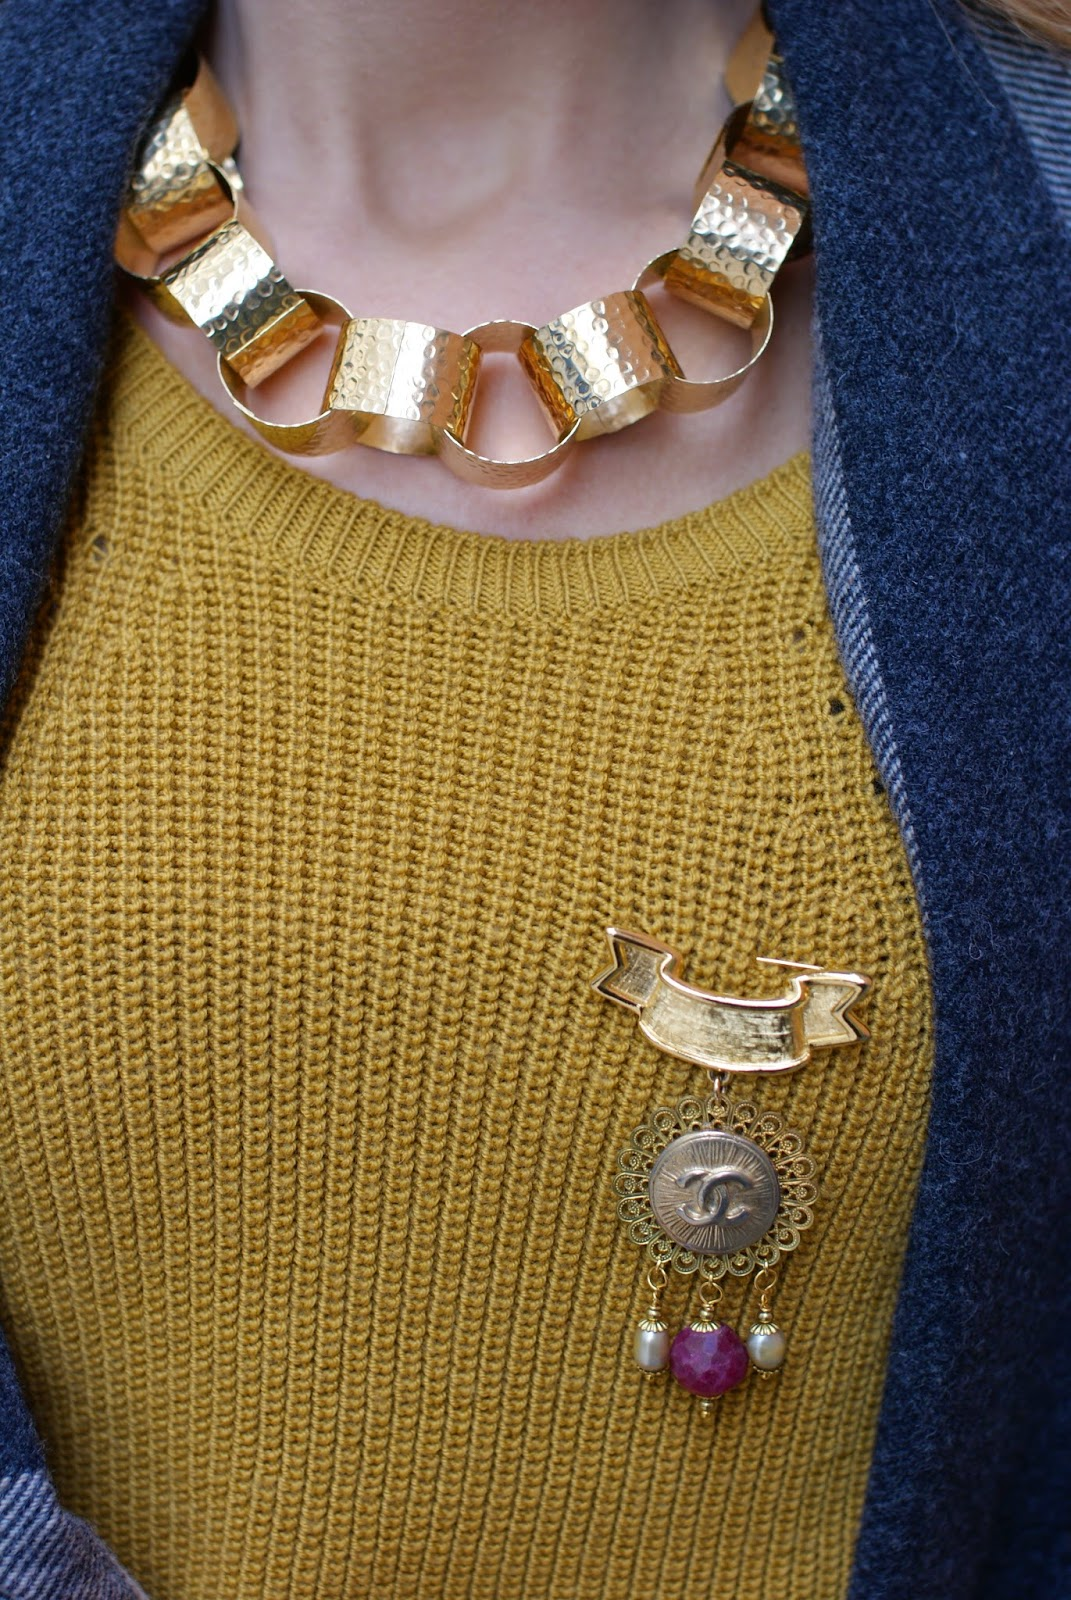 Vitti Ferria Contin necklace and Threatrebijoux Chanel inspired brooch on Fashion and Cookies fashion blog